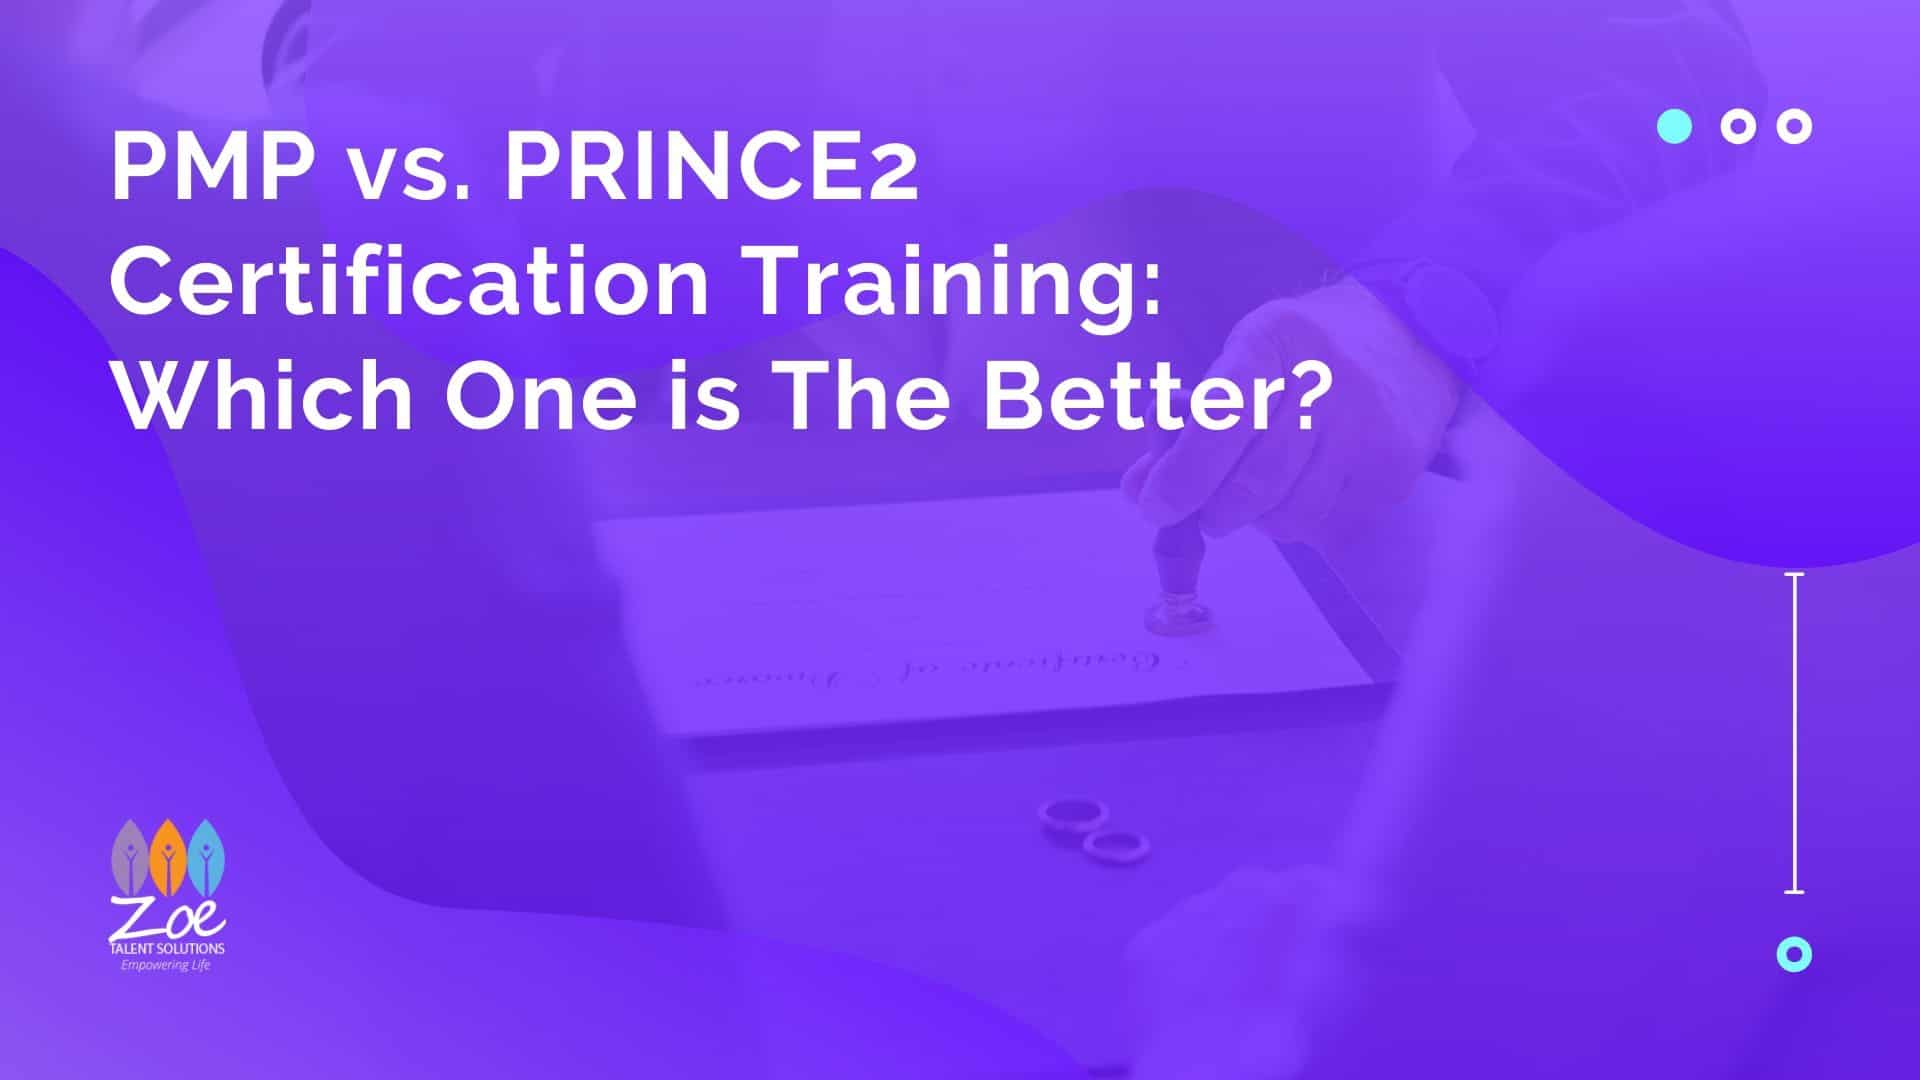 Pmp Vs Prince2 Certification Training Which One Is The